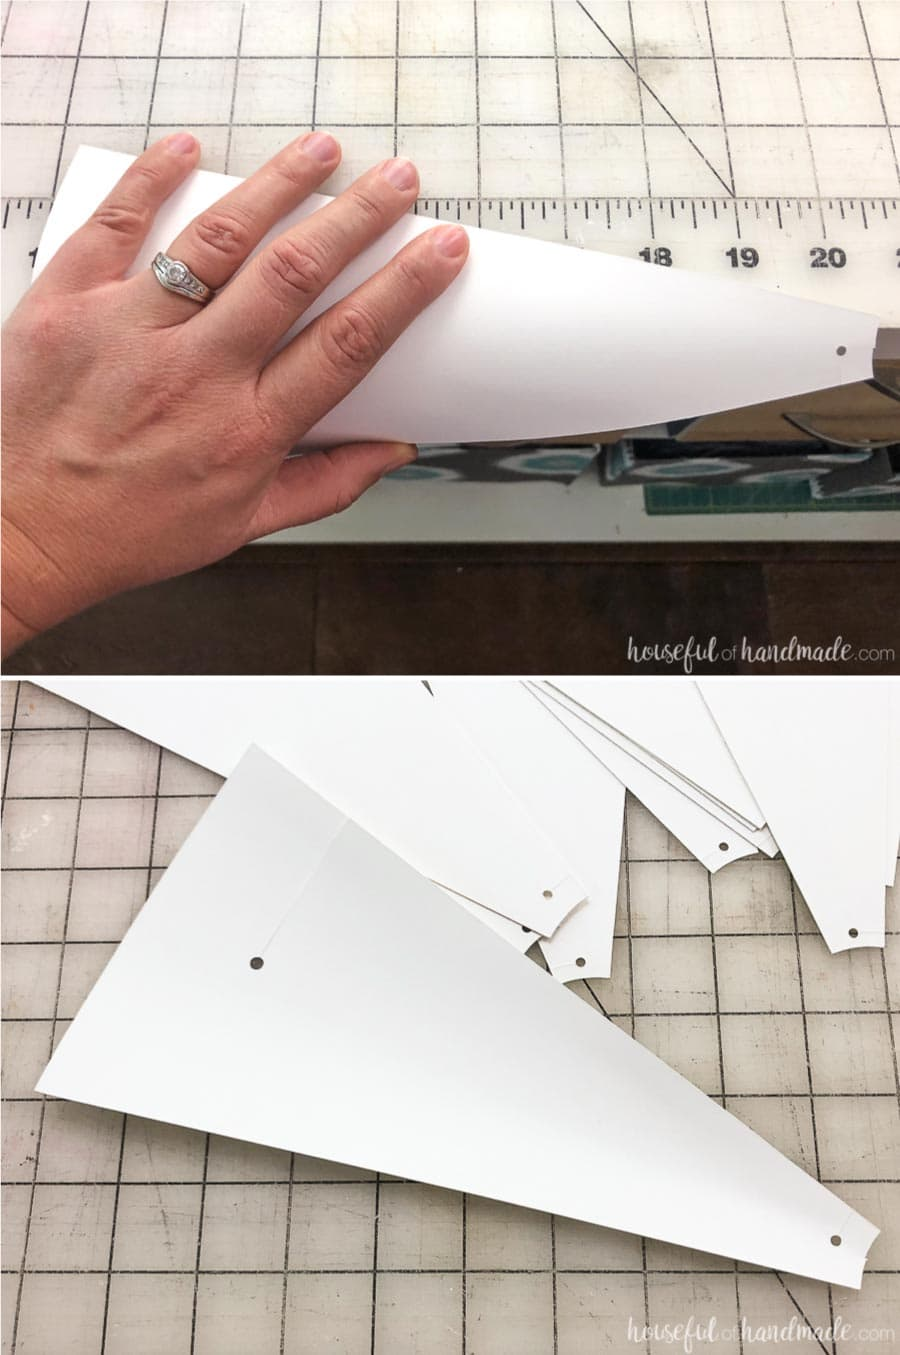 Roll the paper windmill blades over the edge of a table to give it a curve